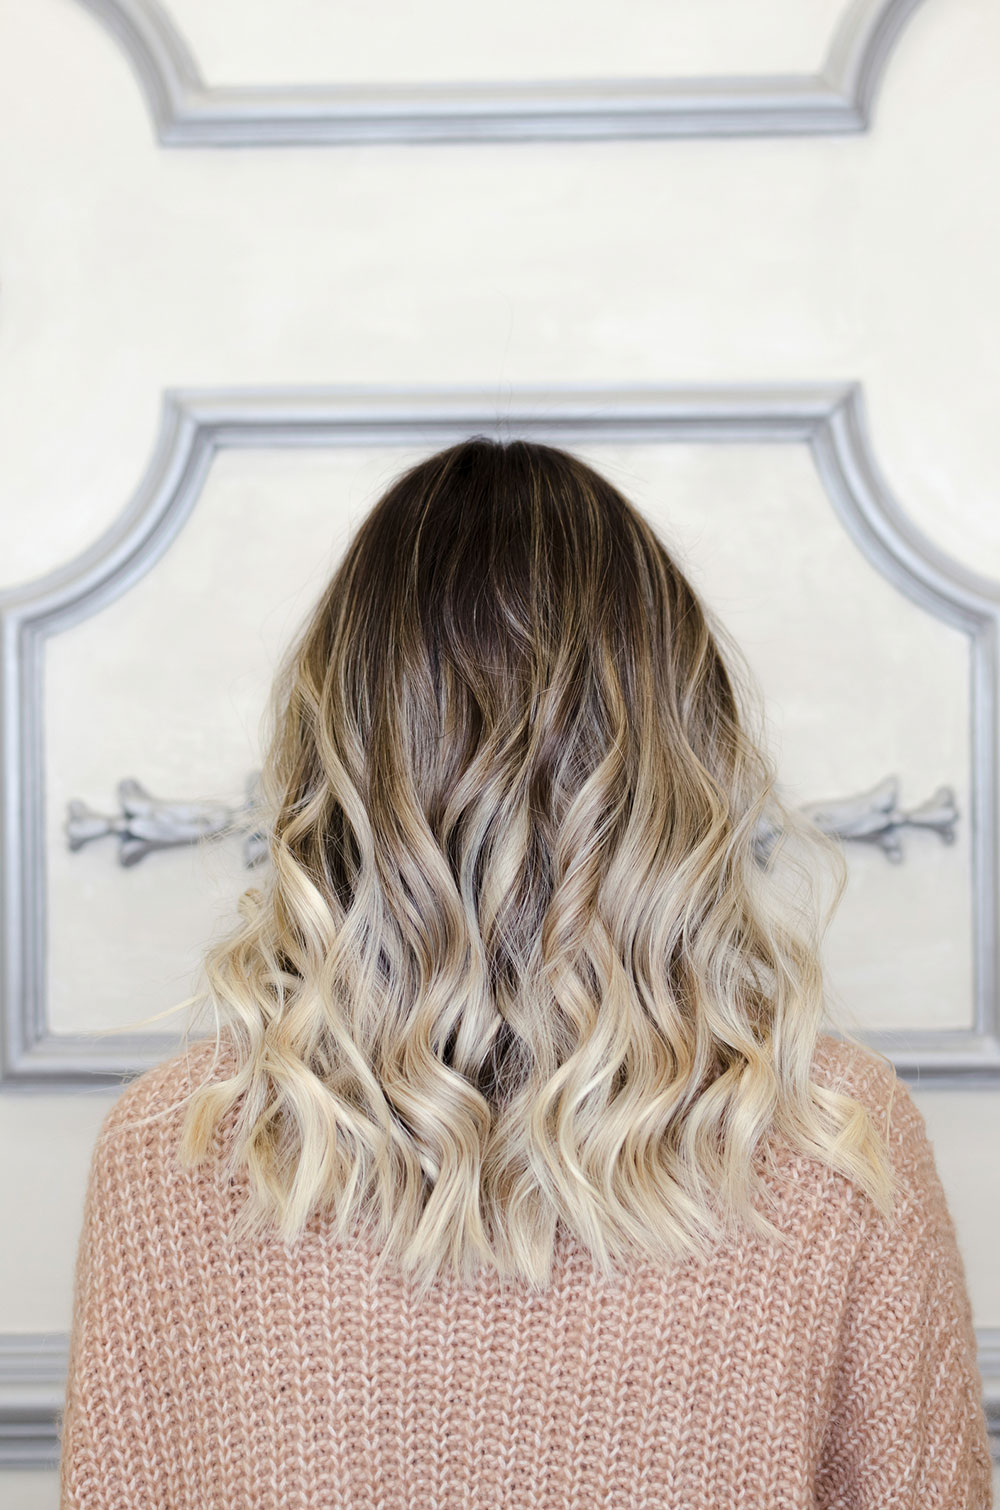 The brassy balayage brown to blonde ombre